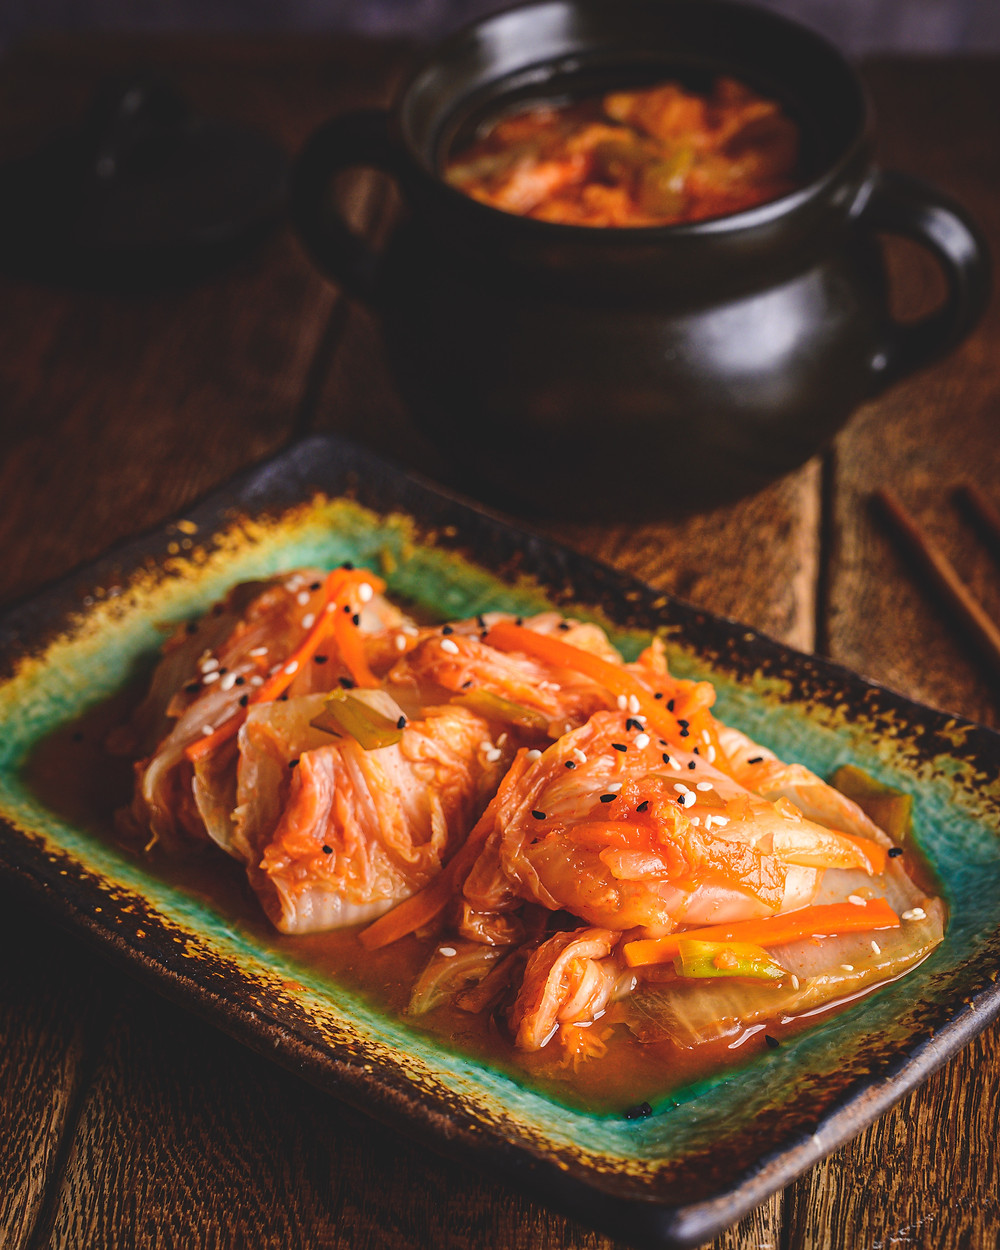 Kimchi on the plate